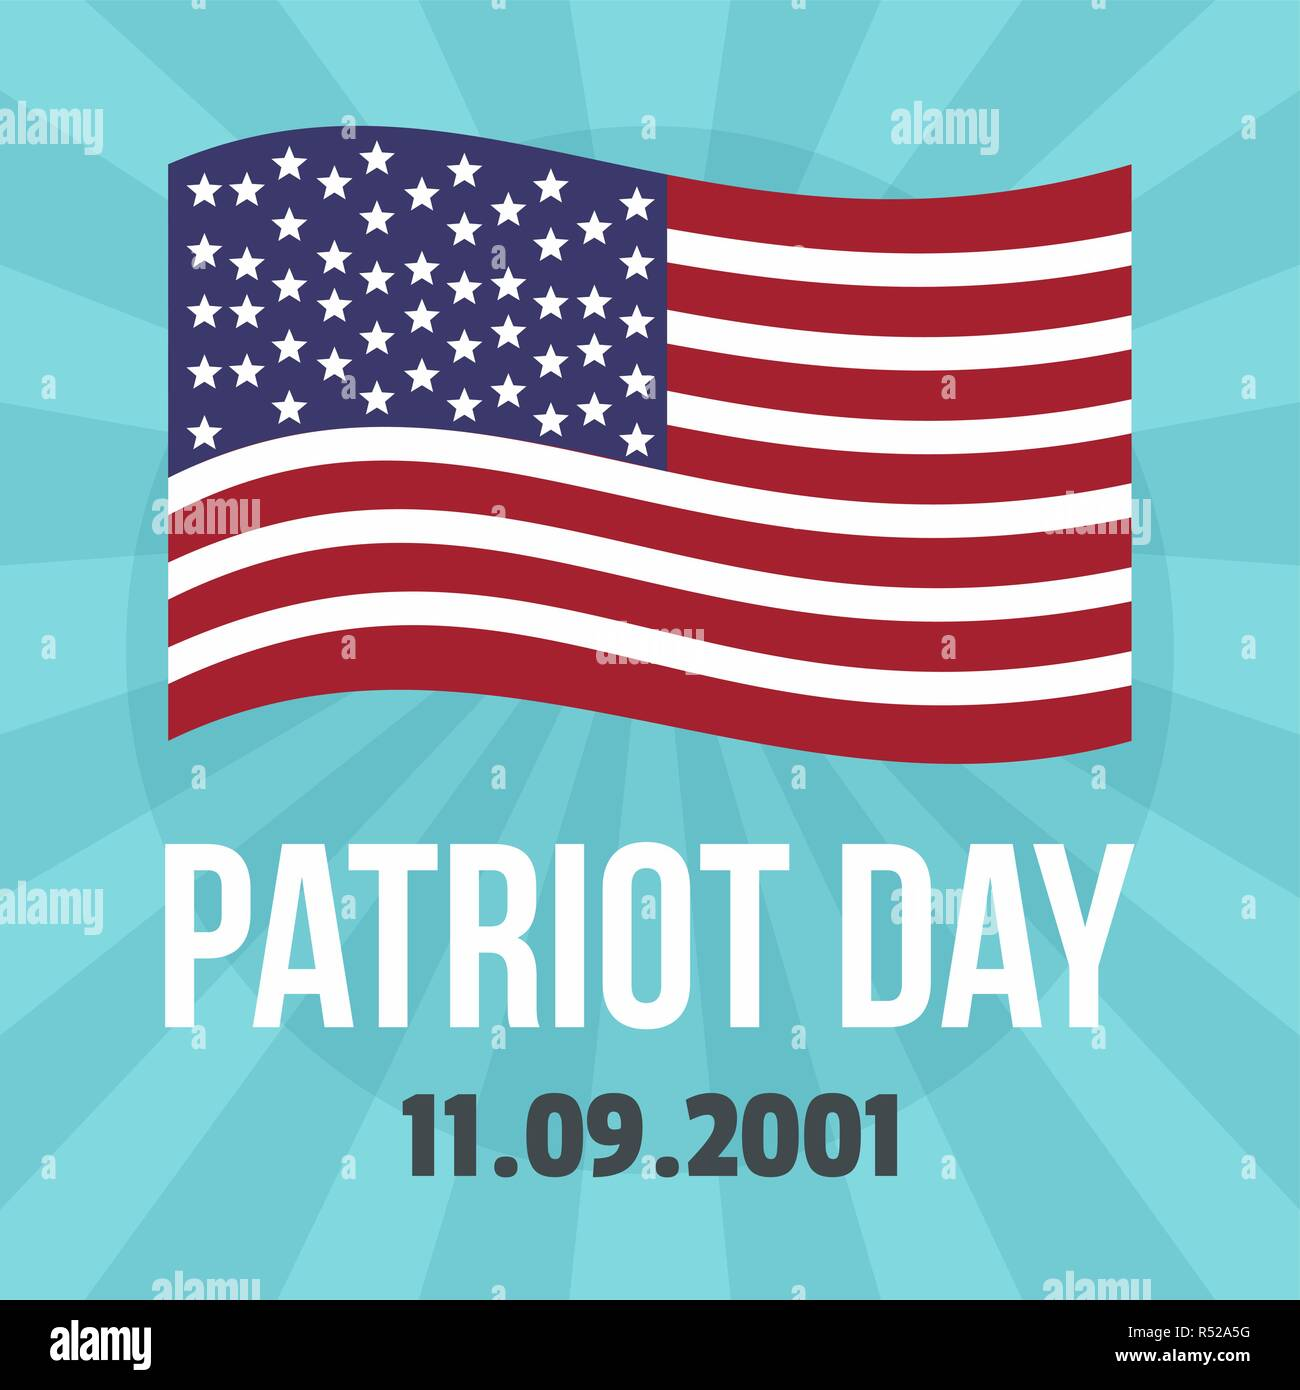 American patriot day background. Flat illustration of american patriot day vector background for web design - Stock Vector